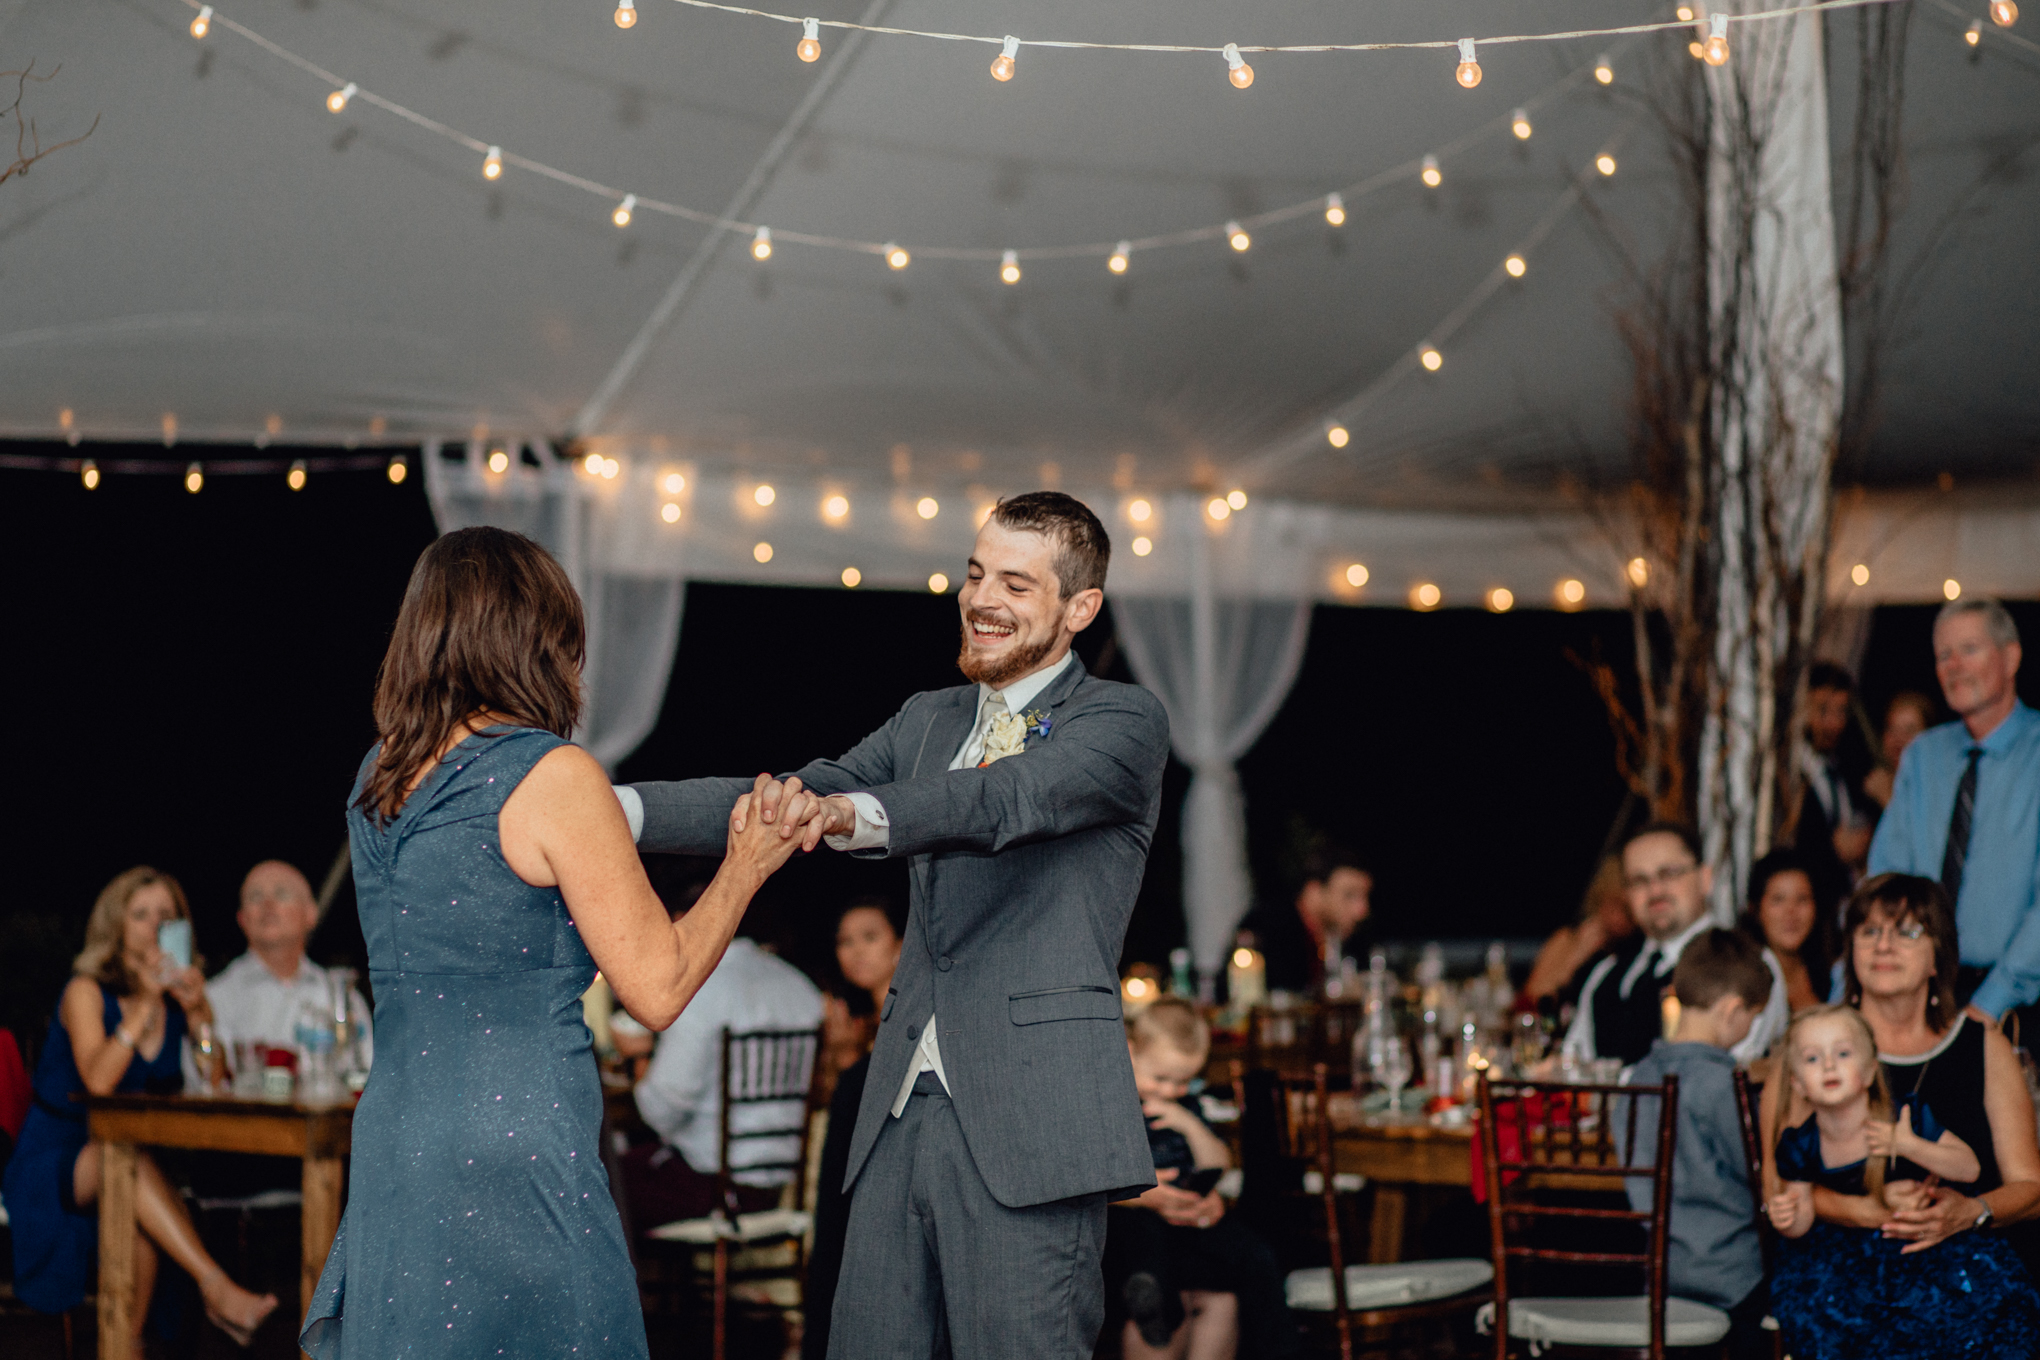 mother son groom dance at reception at oak hill weddings